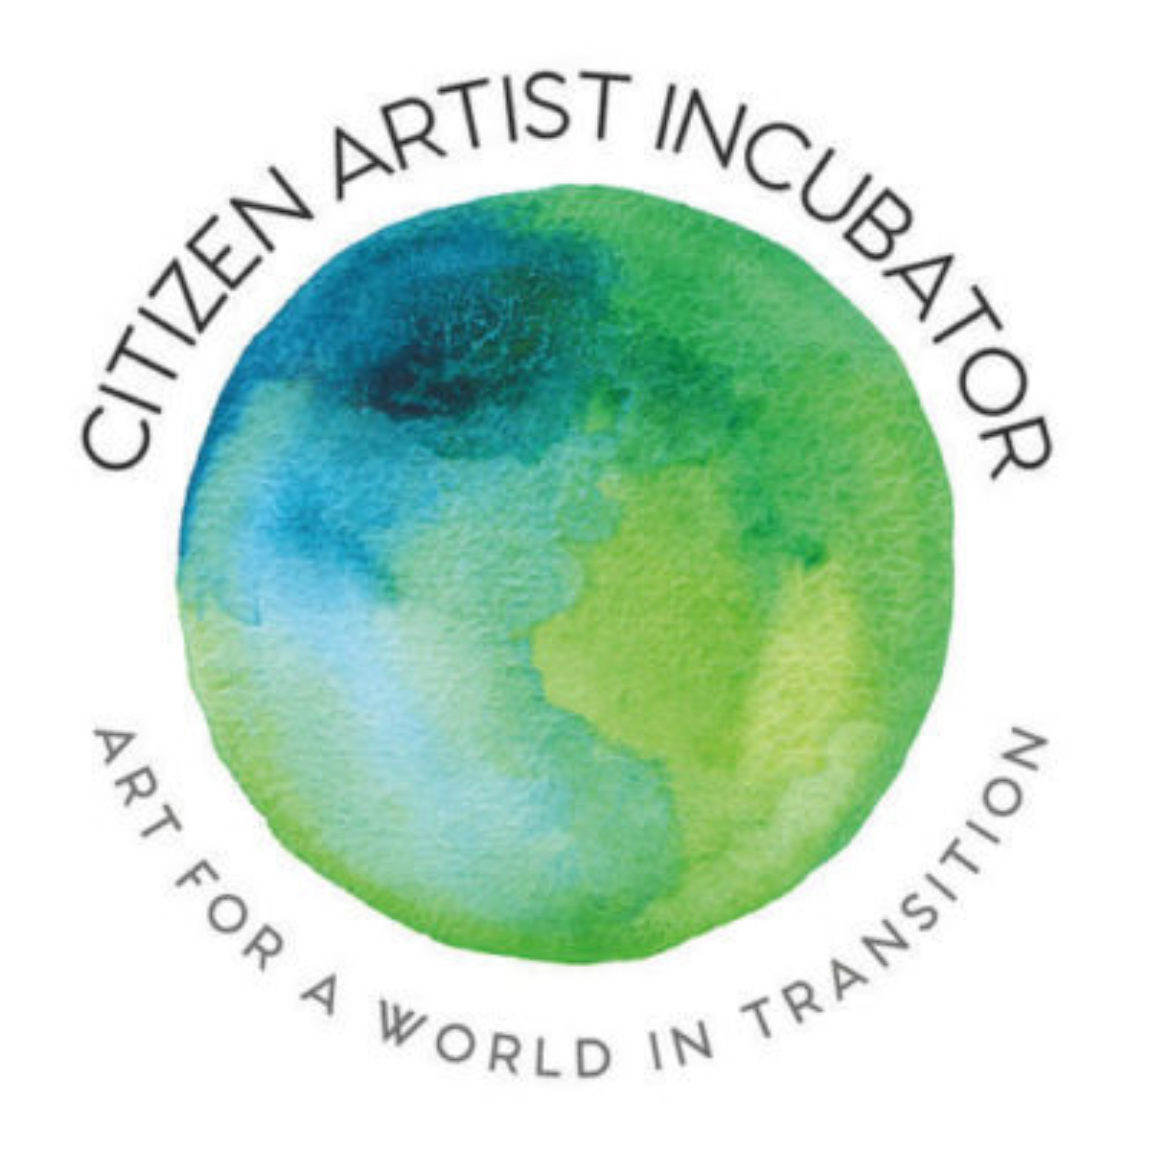 Citizen Artist Incubator (Creative Europe)